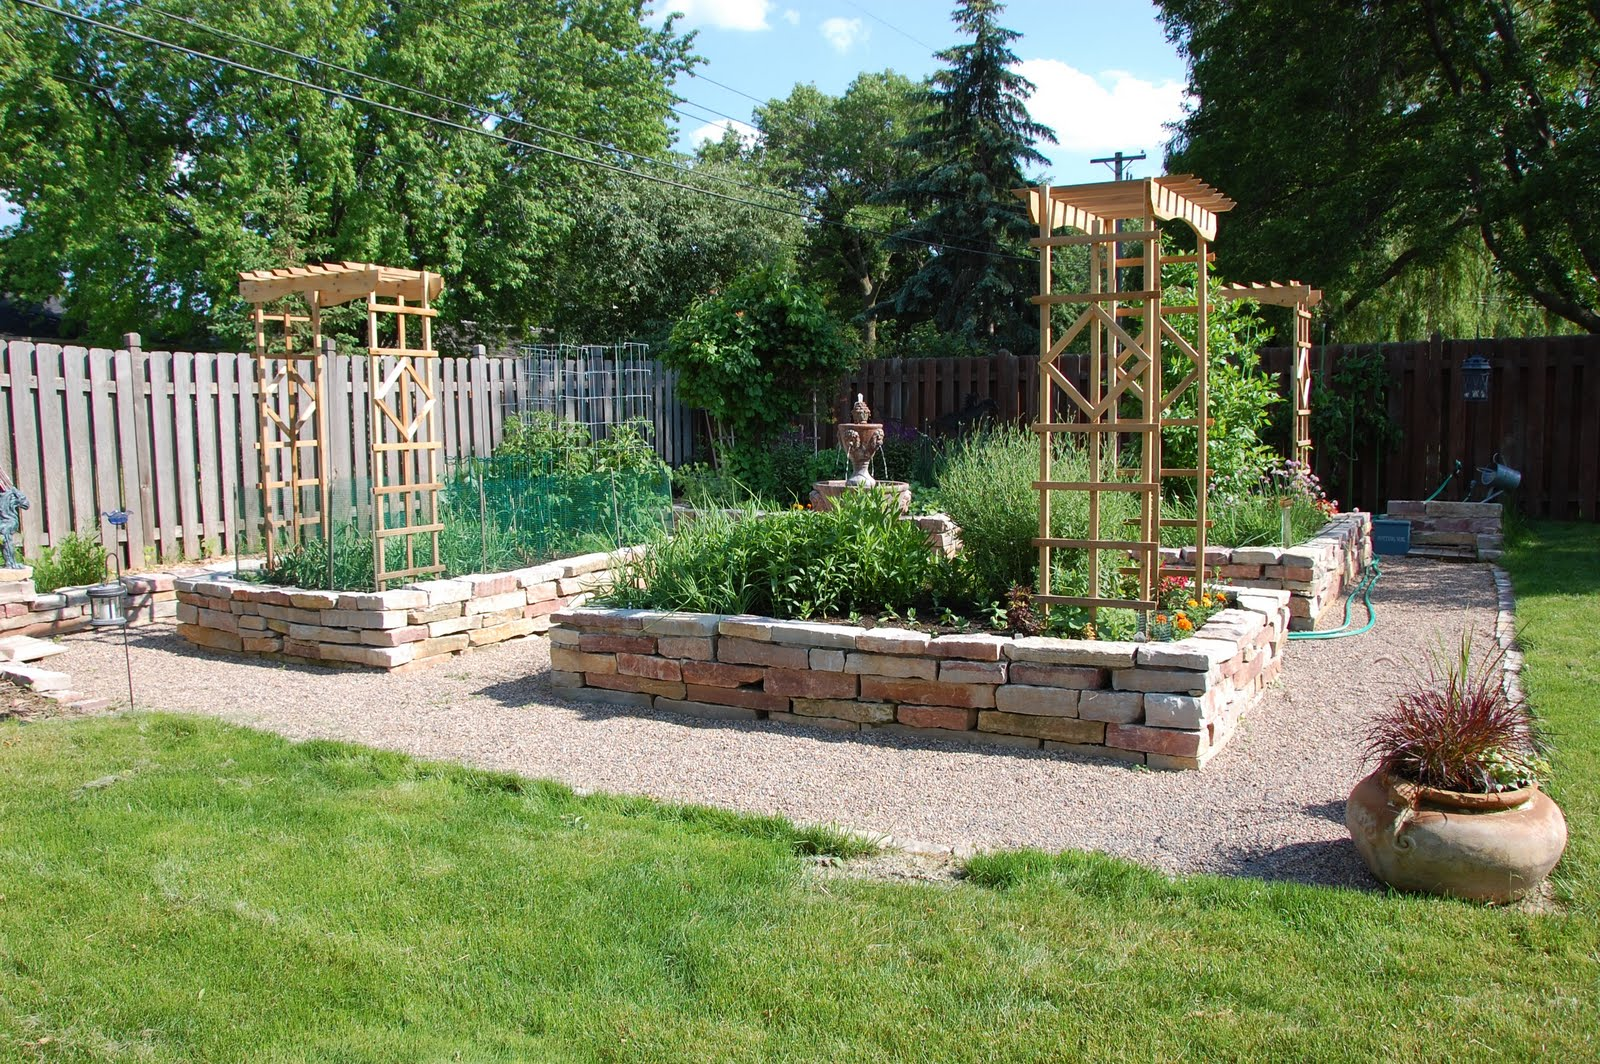 vignette design design bucket list 3 design a beautiful ForRaised Beds Designs For Vegetable Garden